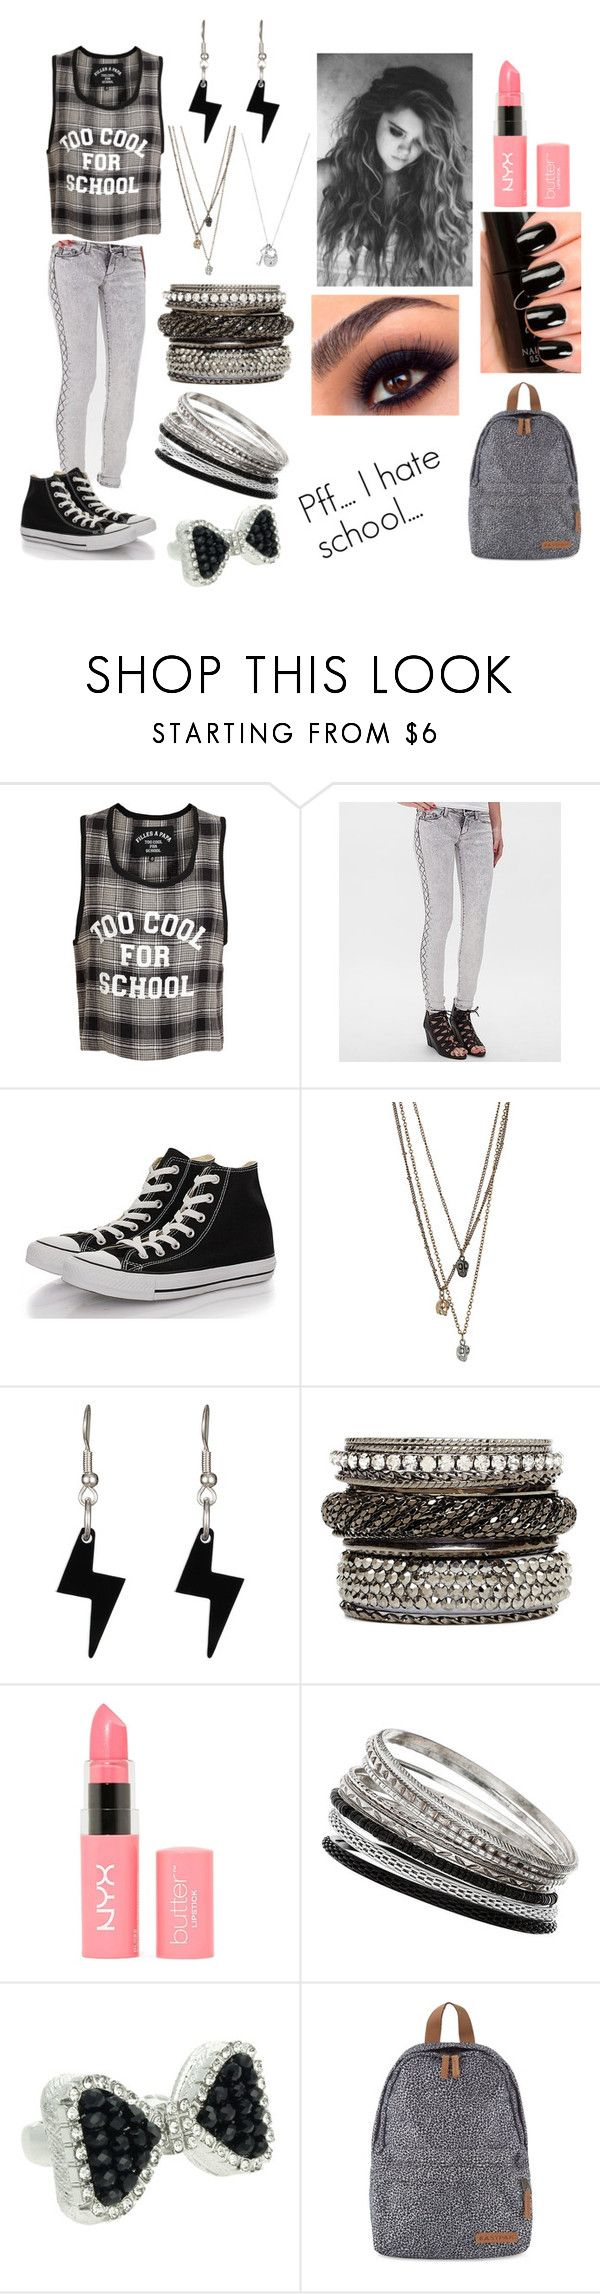 Go to school.... #2 by emma-directioner-r5er on Polyvore featuring mode, Filles à papa, SP Black, Converse, Eastpak, 2b bebe, Wallis, Lipsy, Tatty Devine and NYX